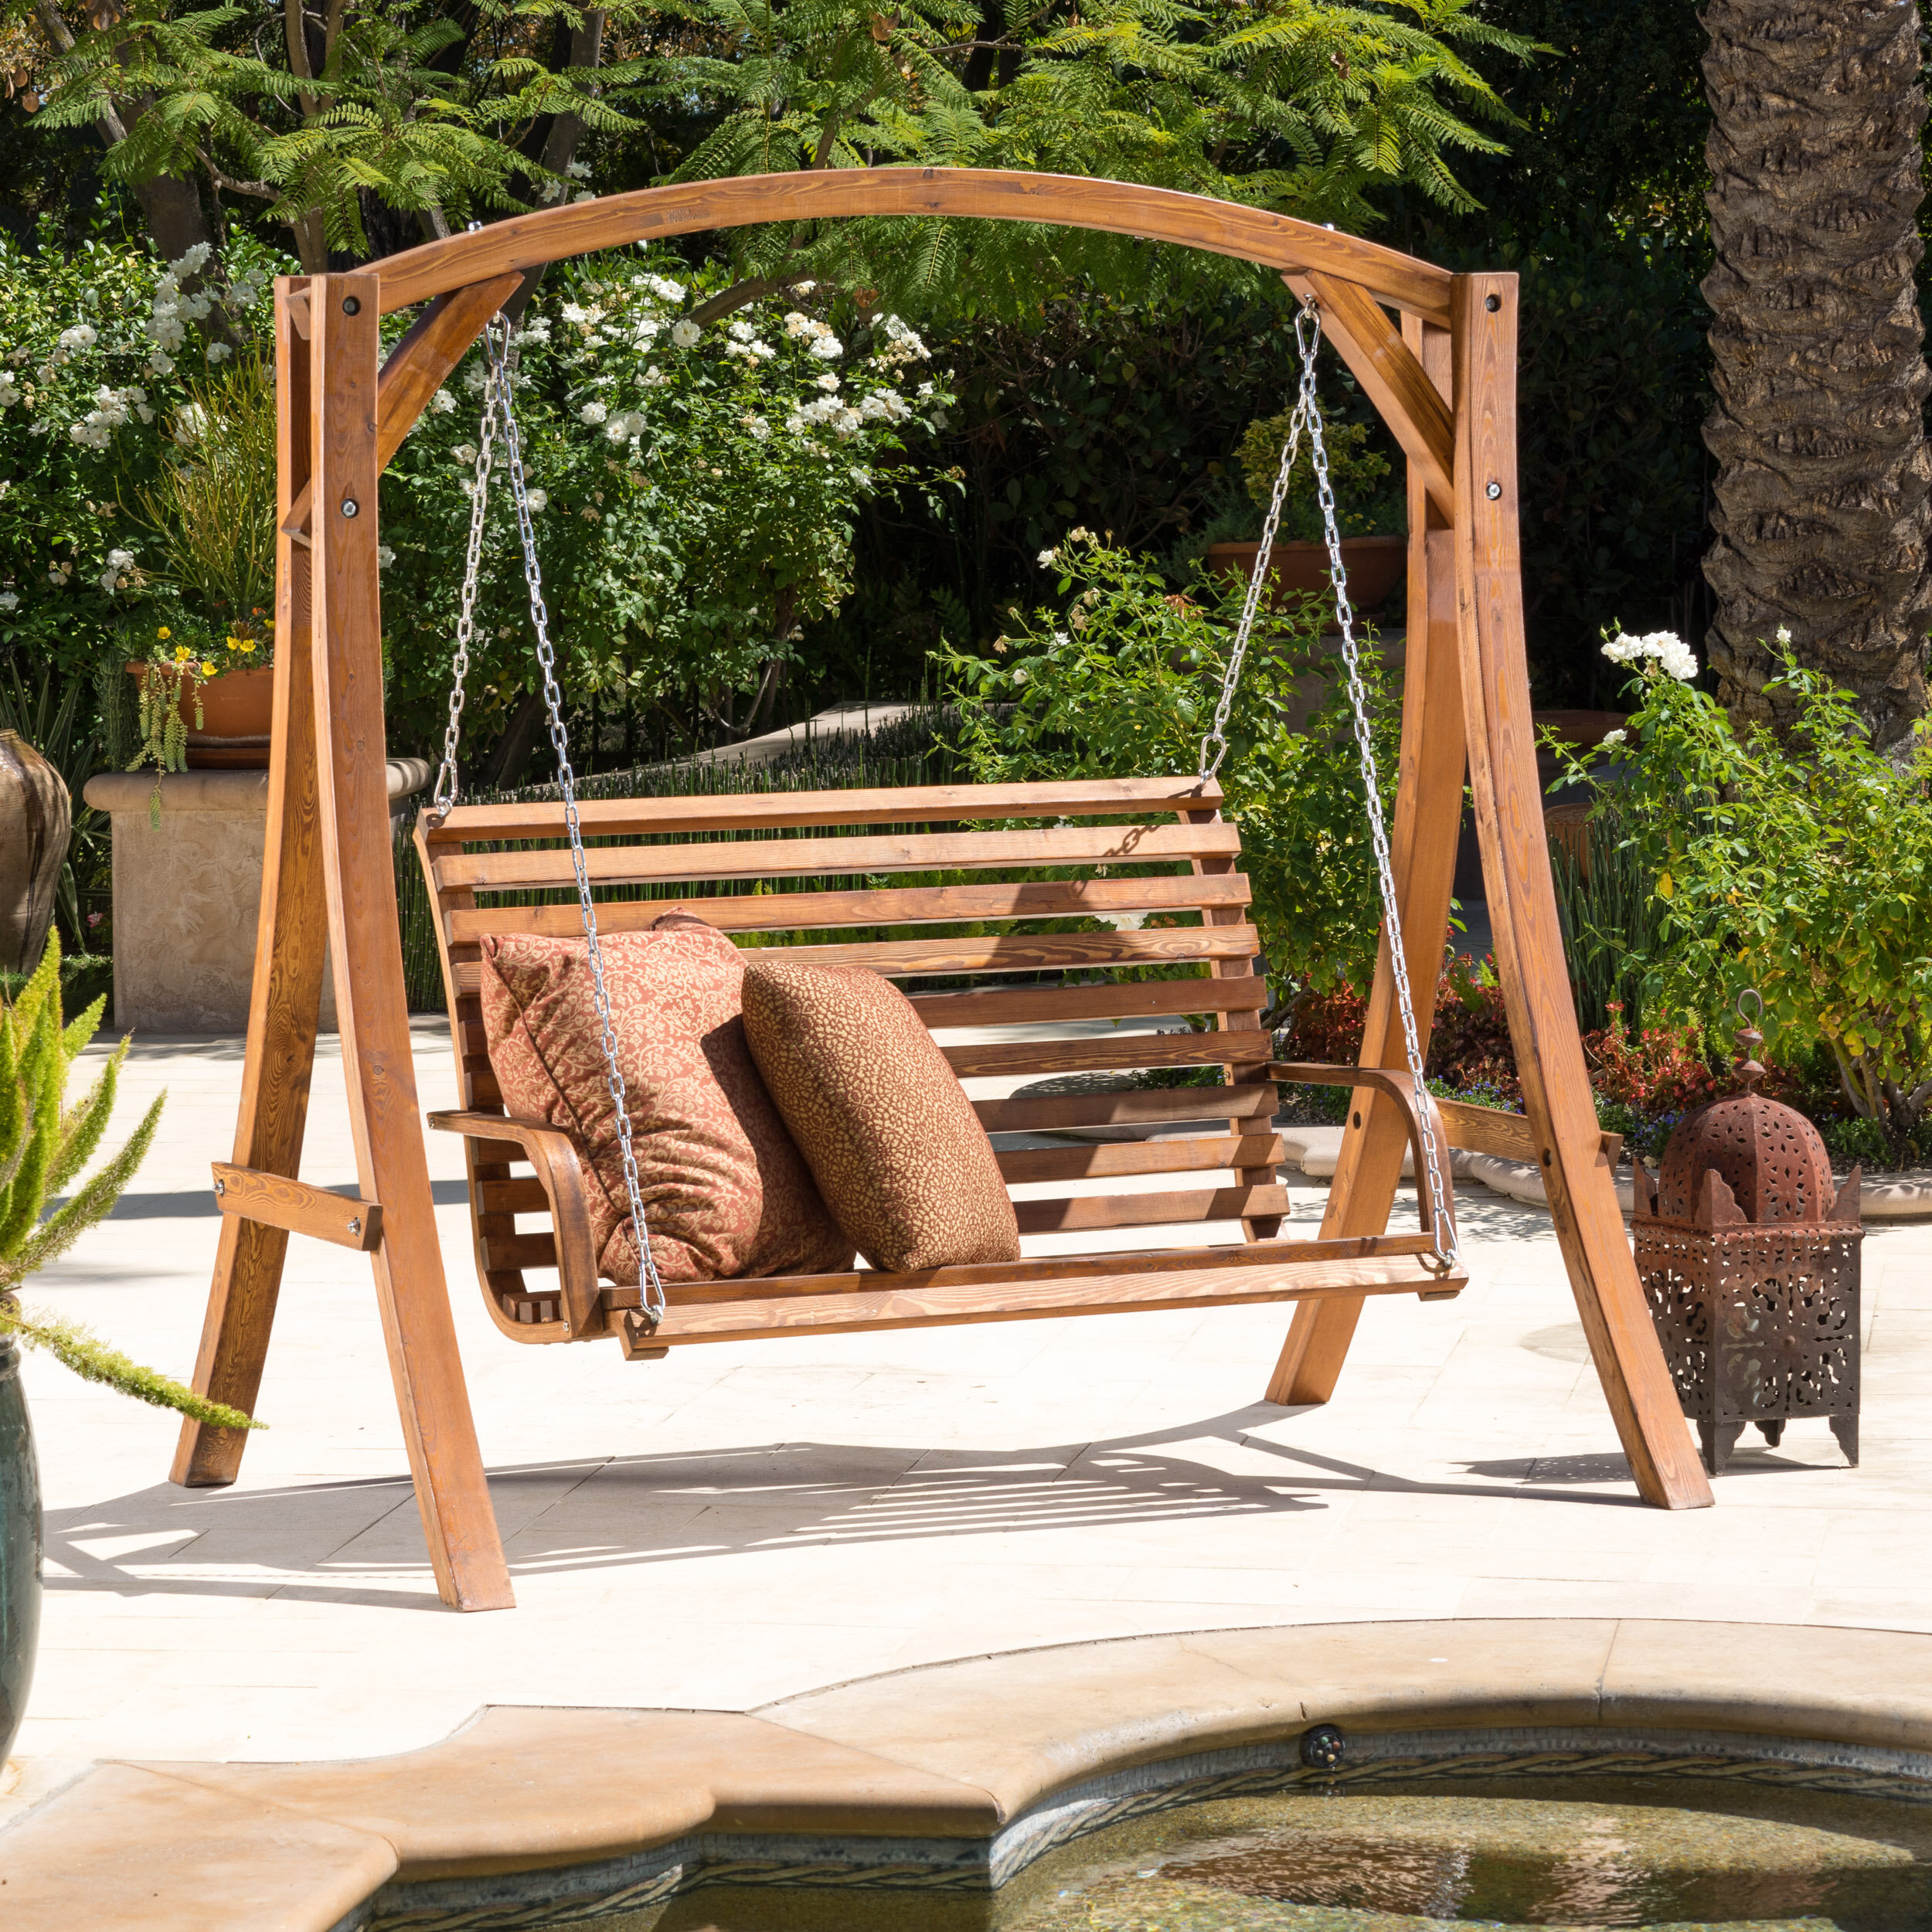 Freeport Park Brandi Porch Swing With Stand & Reviews | Wayfair Throughout Hardwood Hanging Porch Swings With Stand (View 22 of 25)